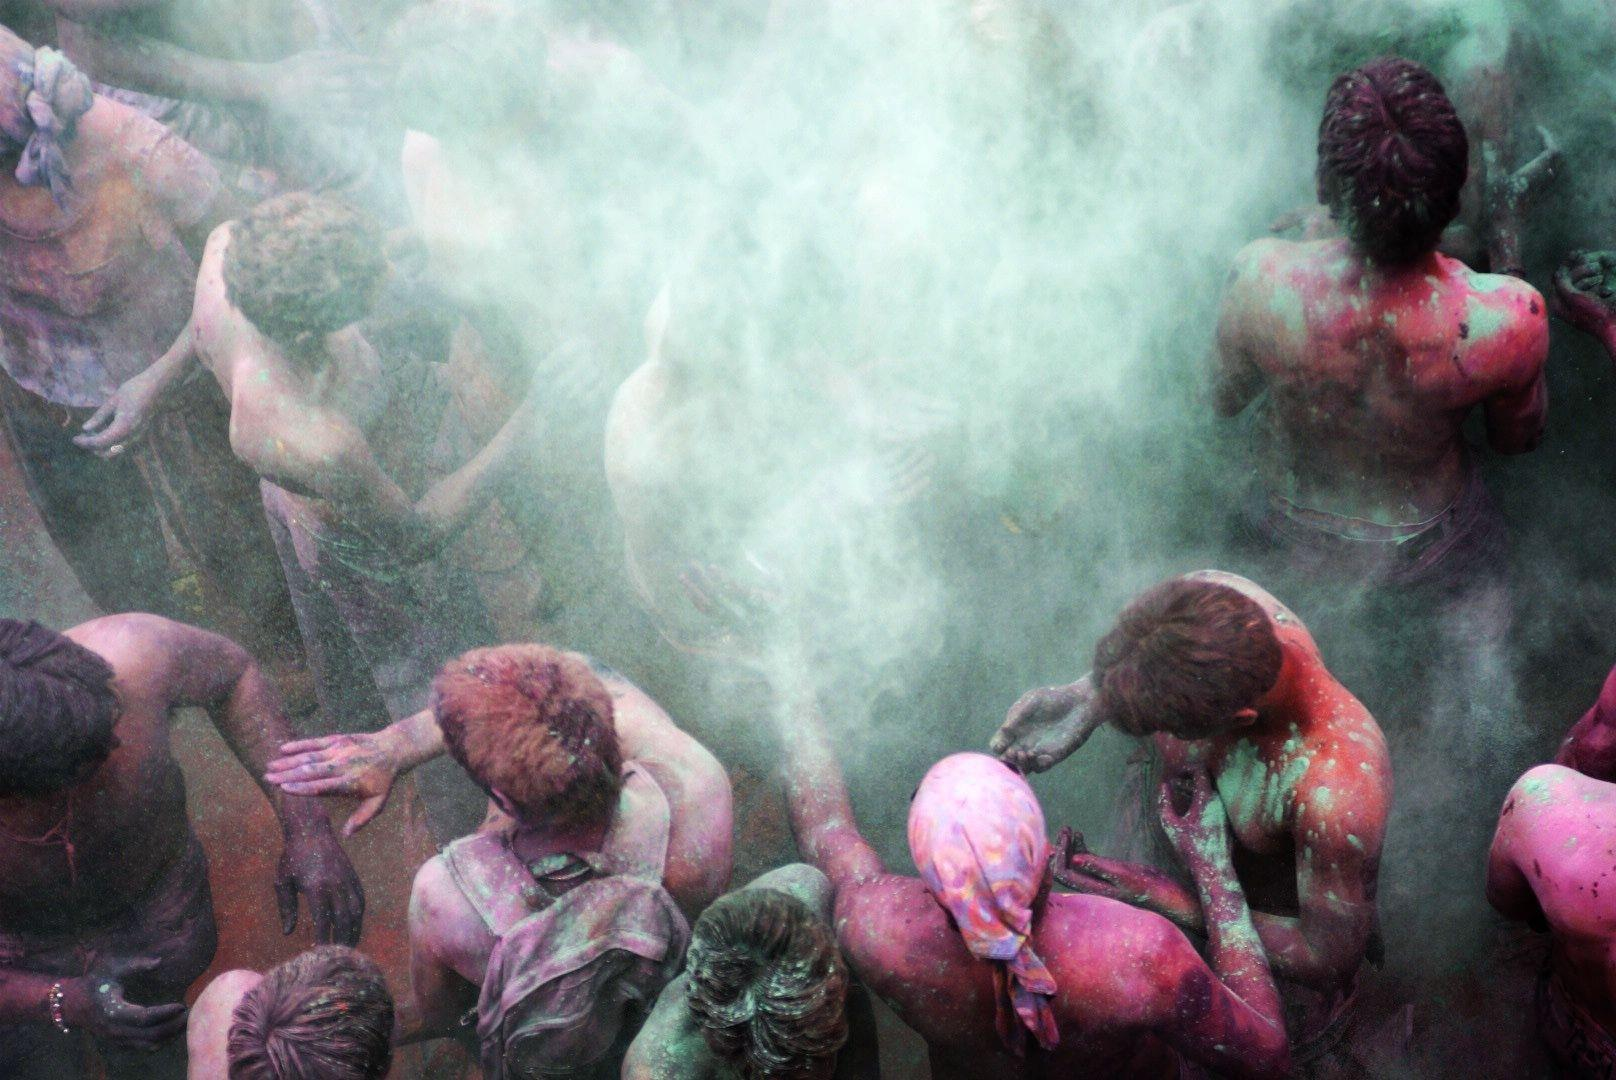 Locals Celebrating Holi Festival in Pushkar, India